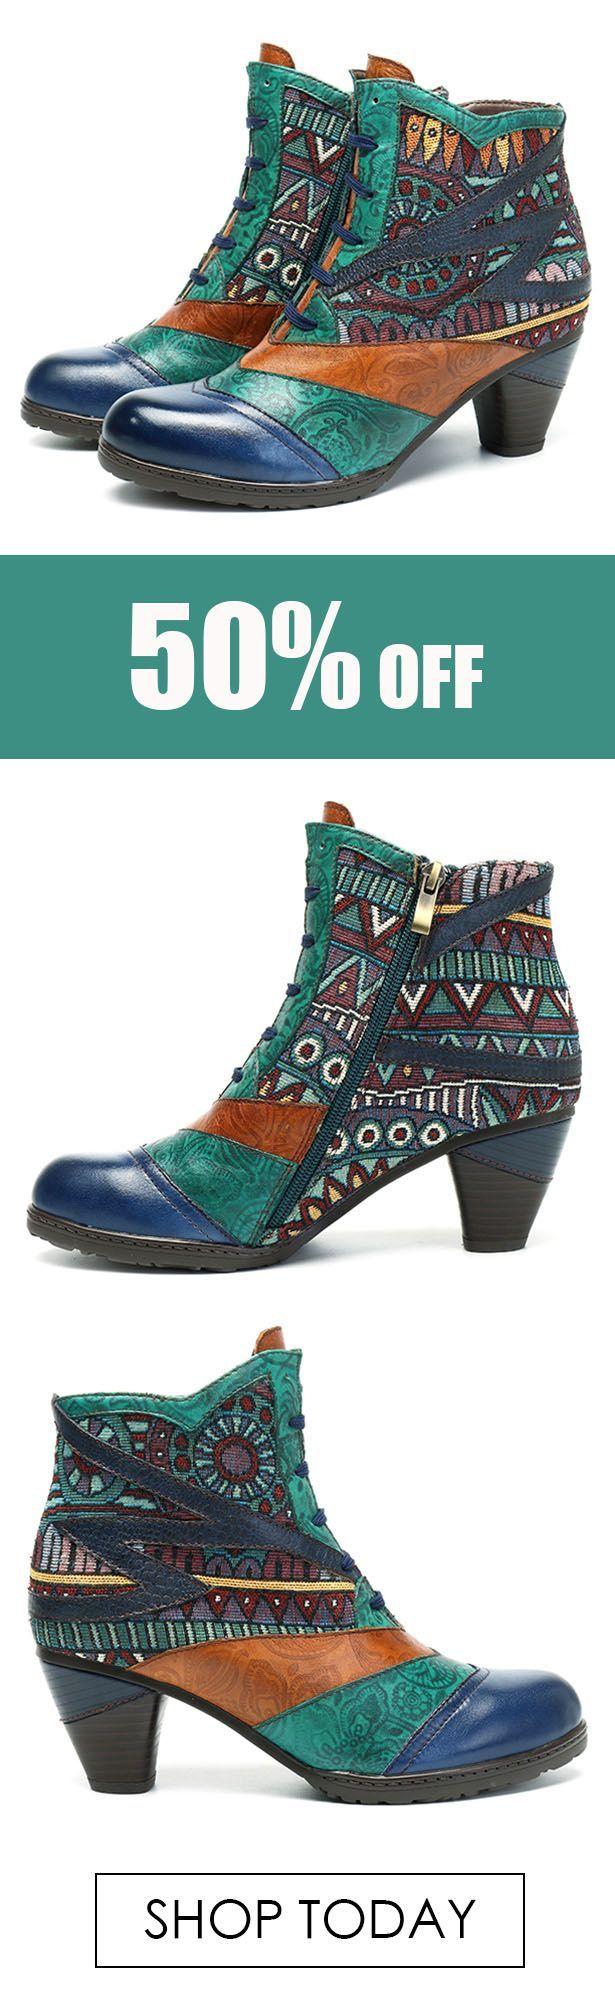 SOCOFY Bohemian Splicing Pattern Block Zipper Ankle Leather Boots. #winter #boots #style